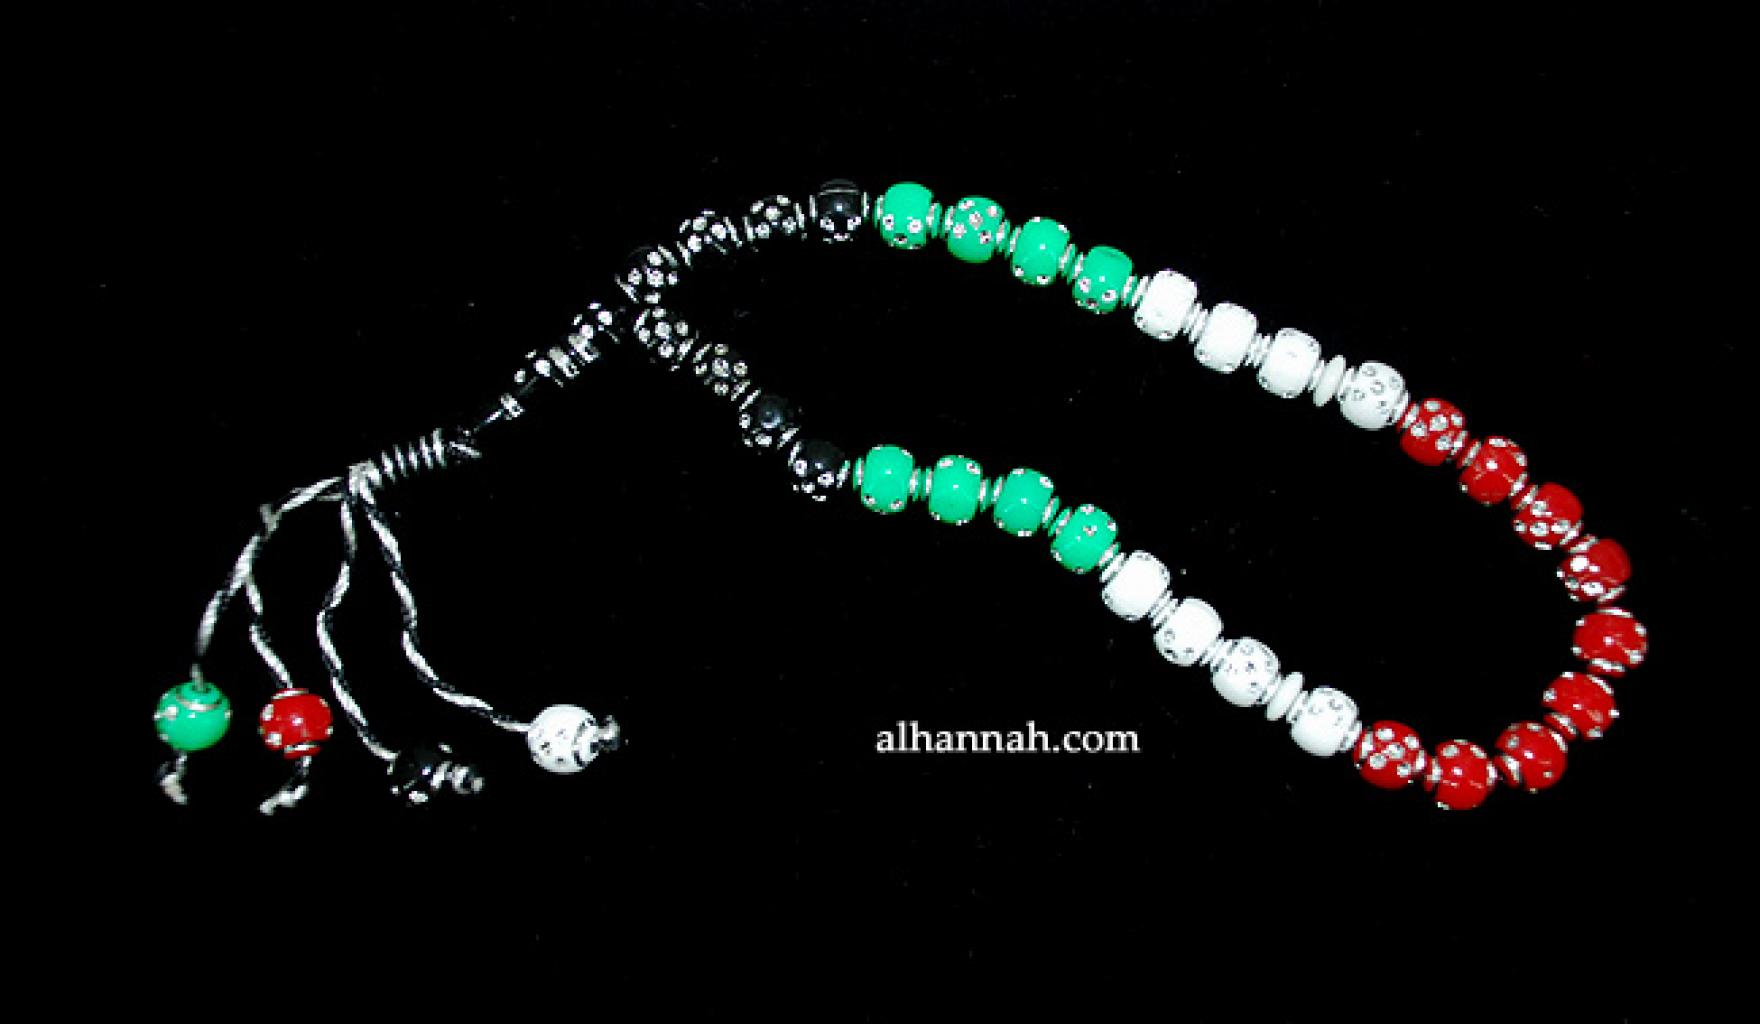 Palestinian-styled Prayer Beads with Textured Design gi685